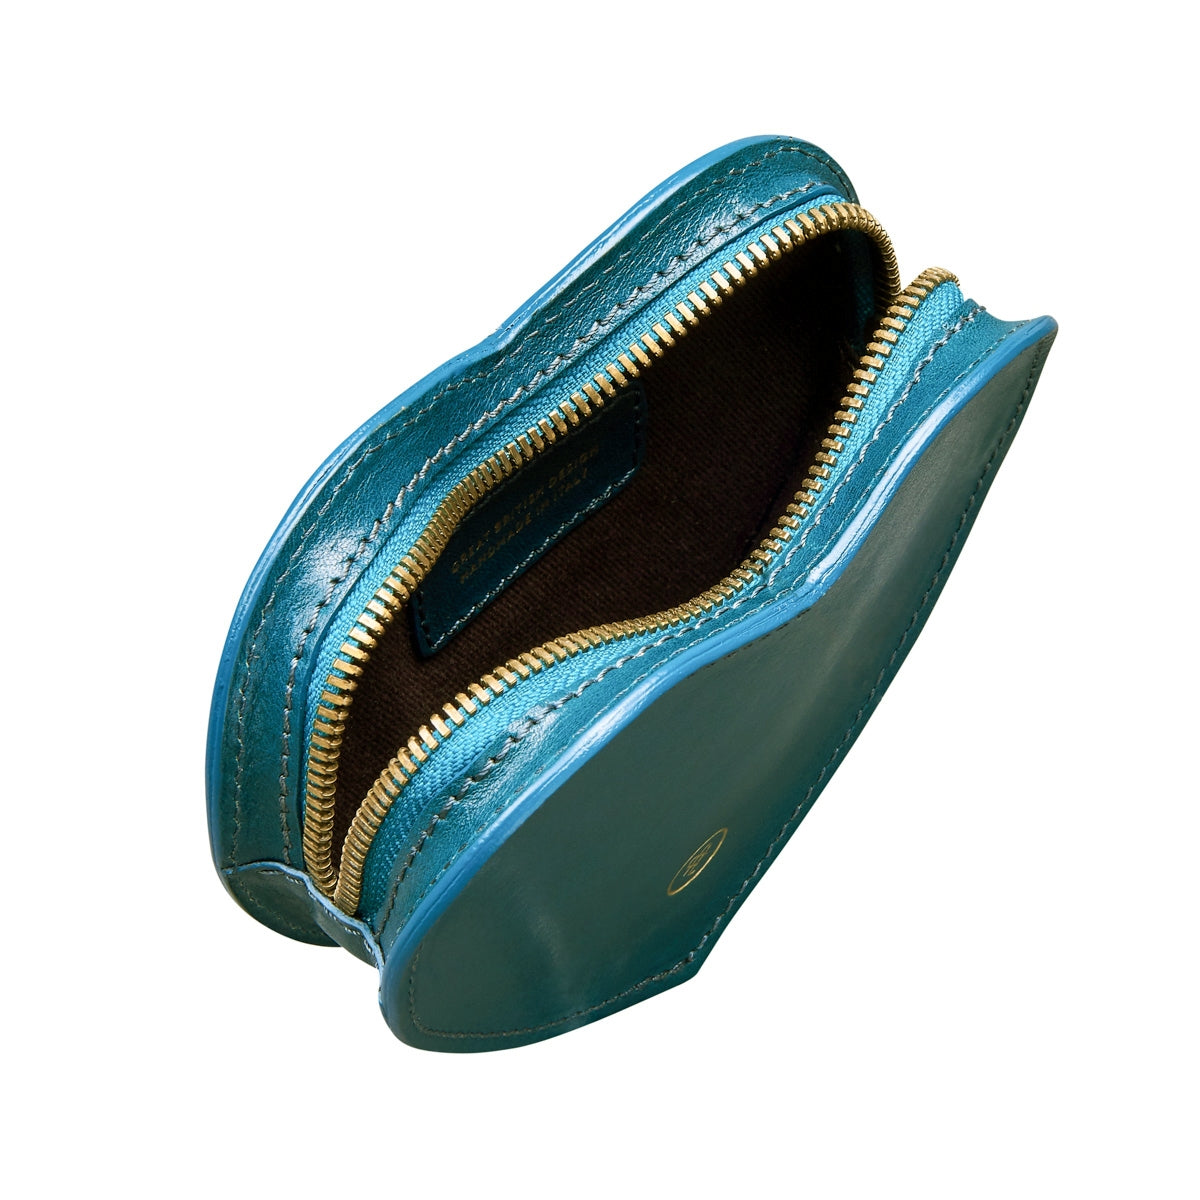 Image 5 of the 'MirabellaL' Ladies Leather Handbag Tidy